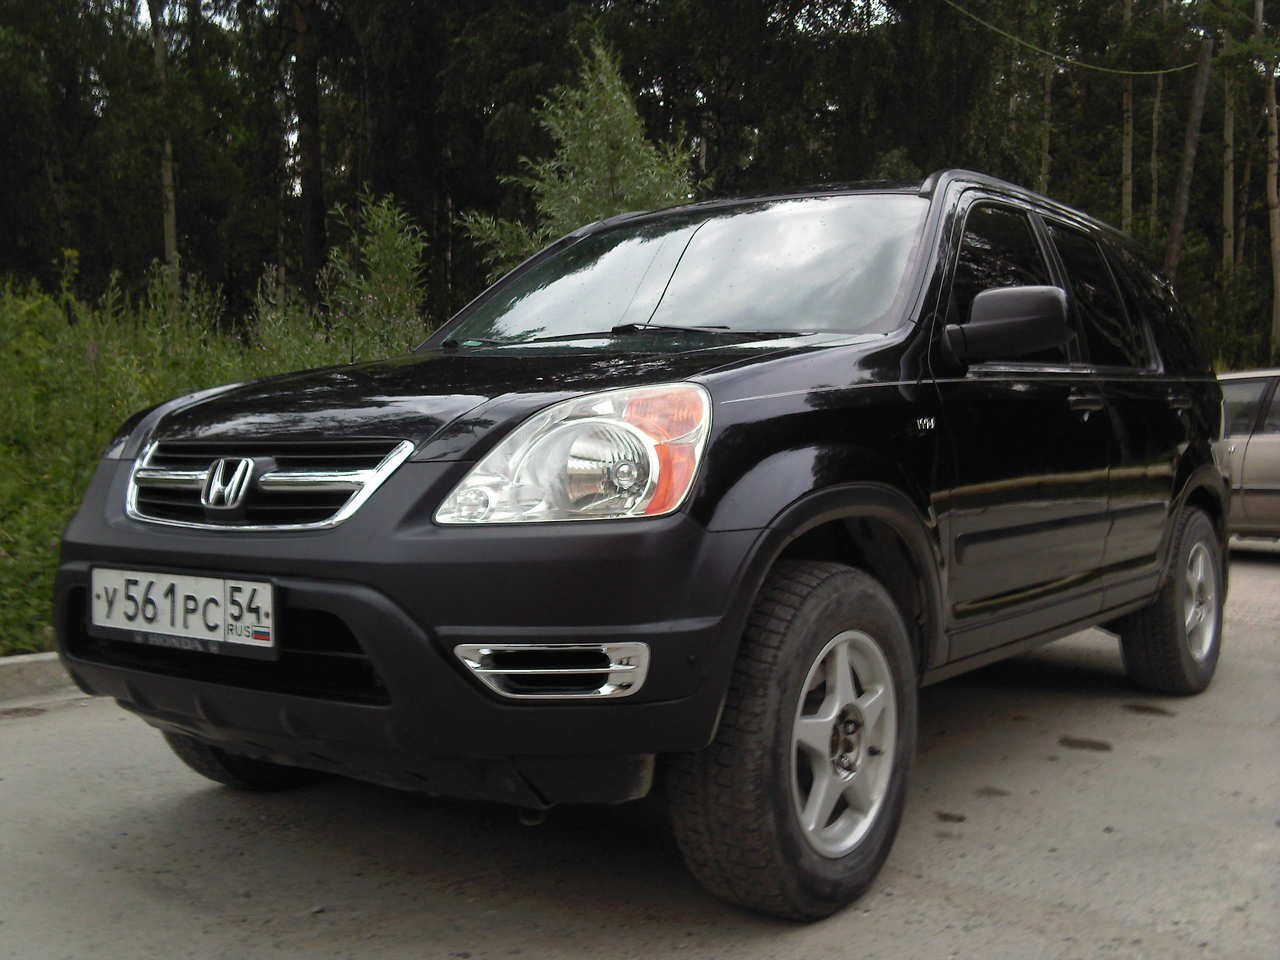 Honda CR-V 2.4 2004 photo - 6